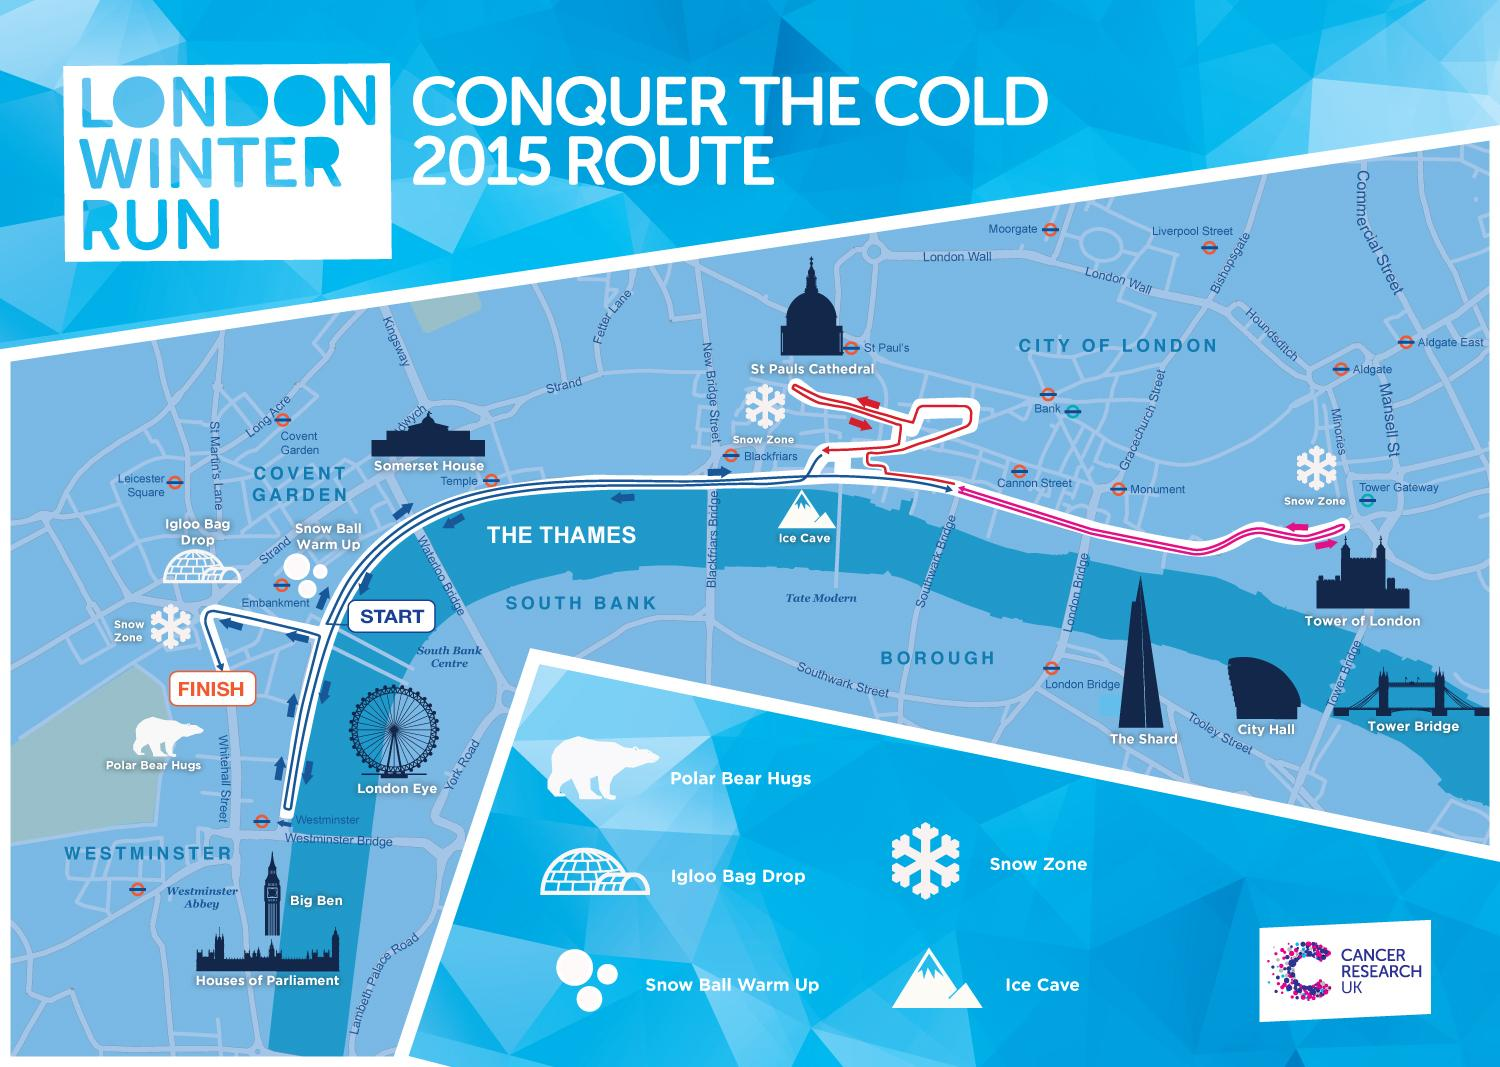 Keep fit throughout the winter - book your spot in London's brand new @WinterRunSeries 10k for @CR_UK Feb 1st 2015 http://t.co/LTMGCCIsny